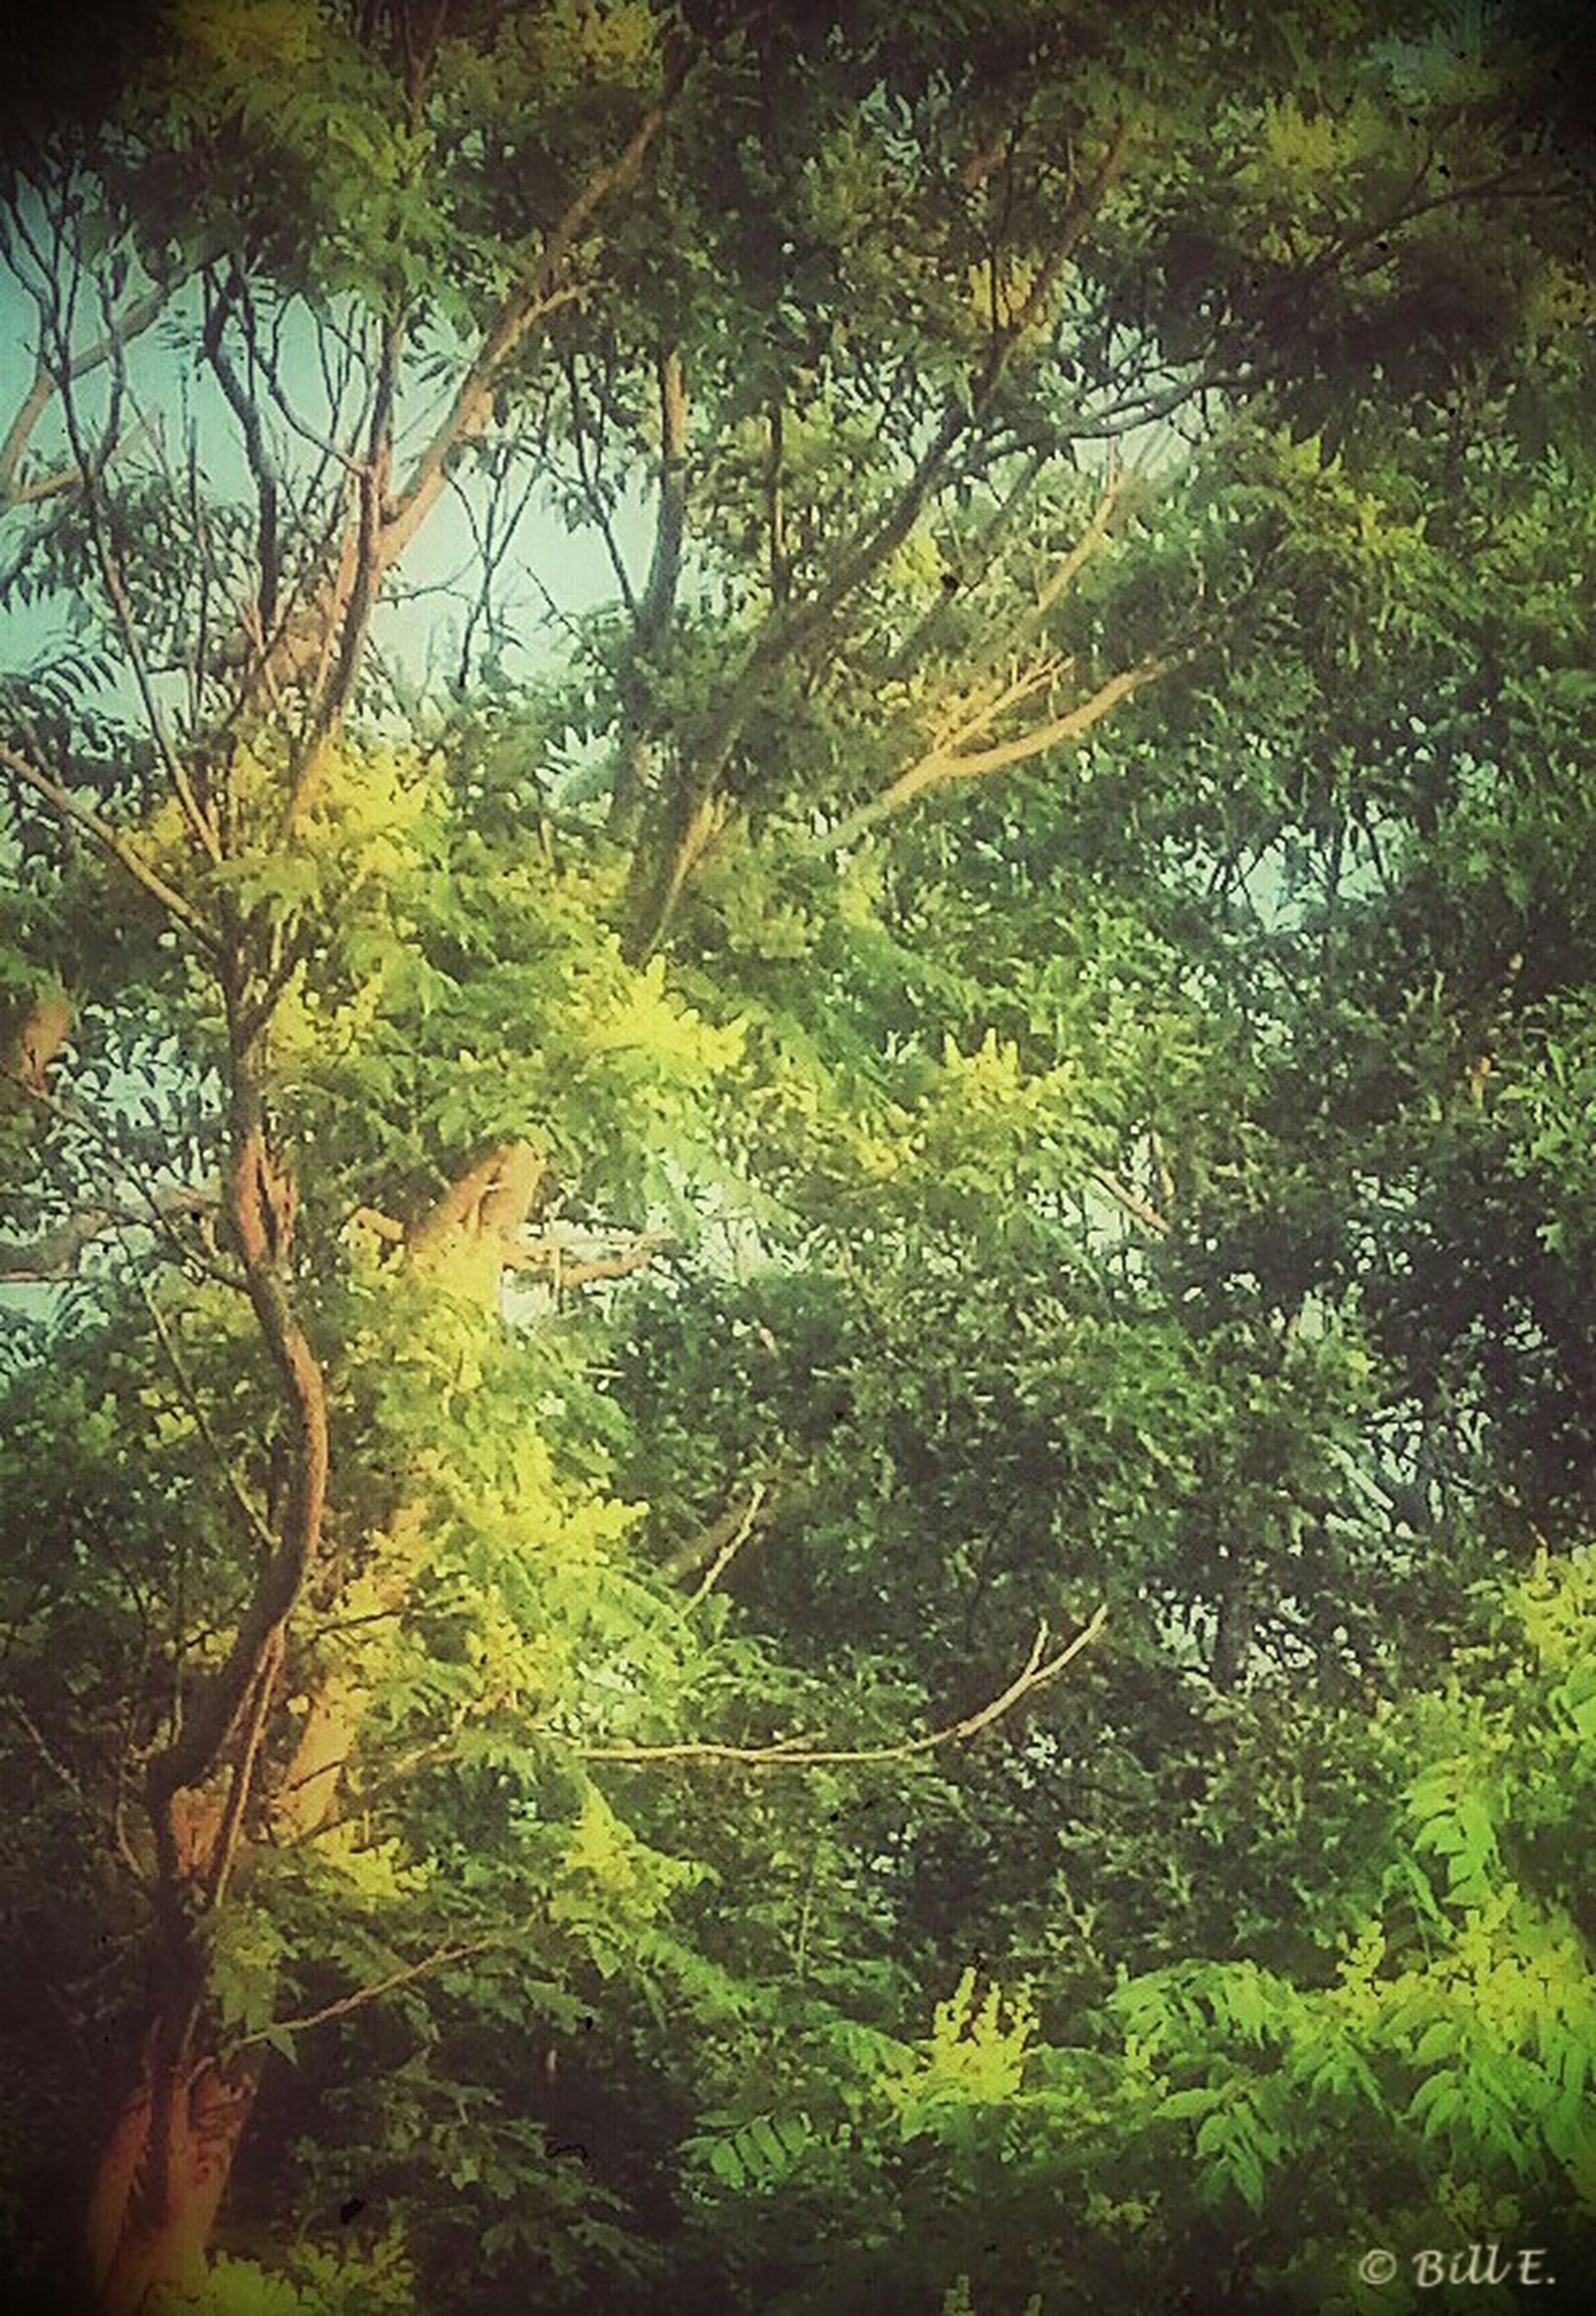 tree, tranquility, growth, tranquil scene, green color, branch, nature, beauty in nature, scenics, forest, lush foliage, tree trunk, idyllic, non-urban scene, day, water, outdoors, plant, landscape, green